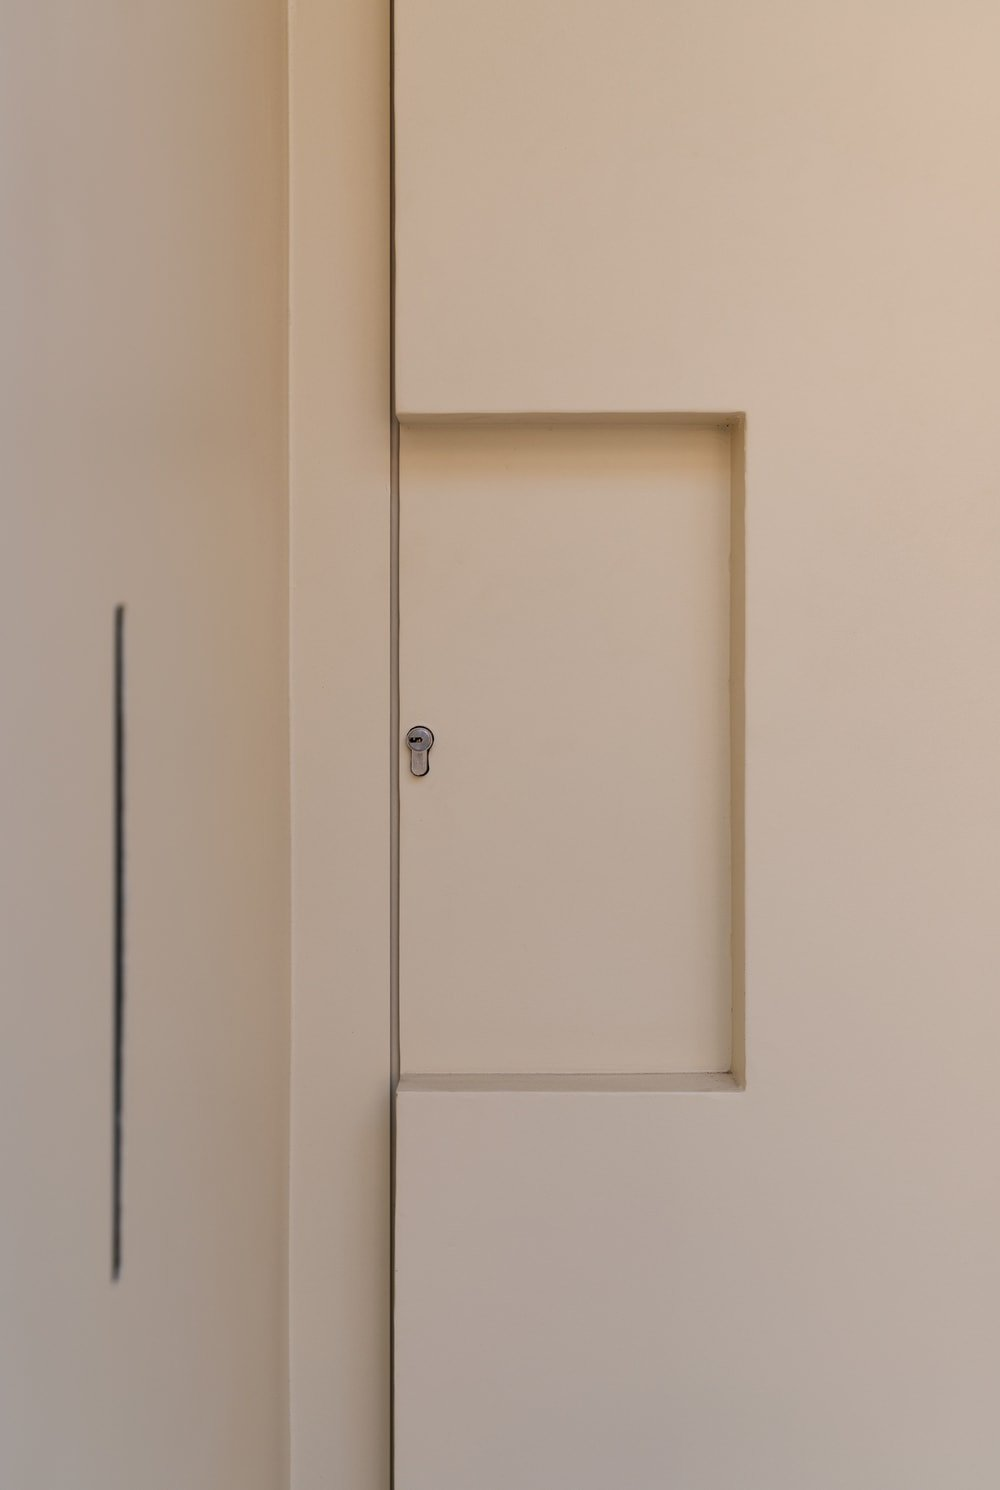 This is a close look at the main door with a key access and a modern design to it.